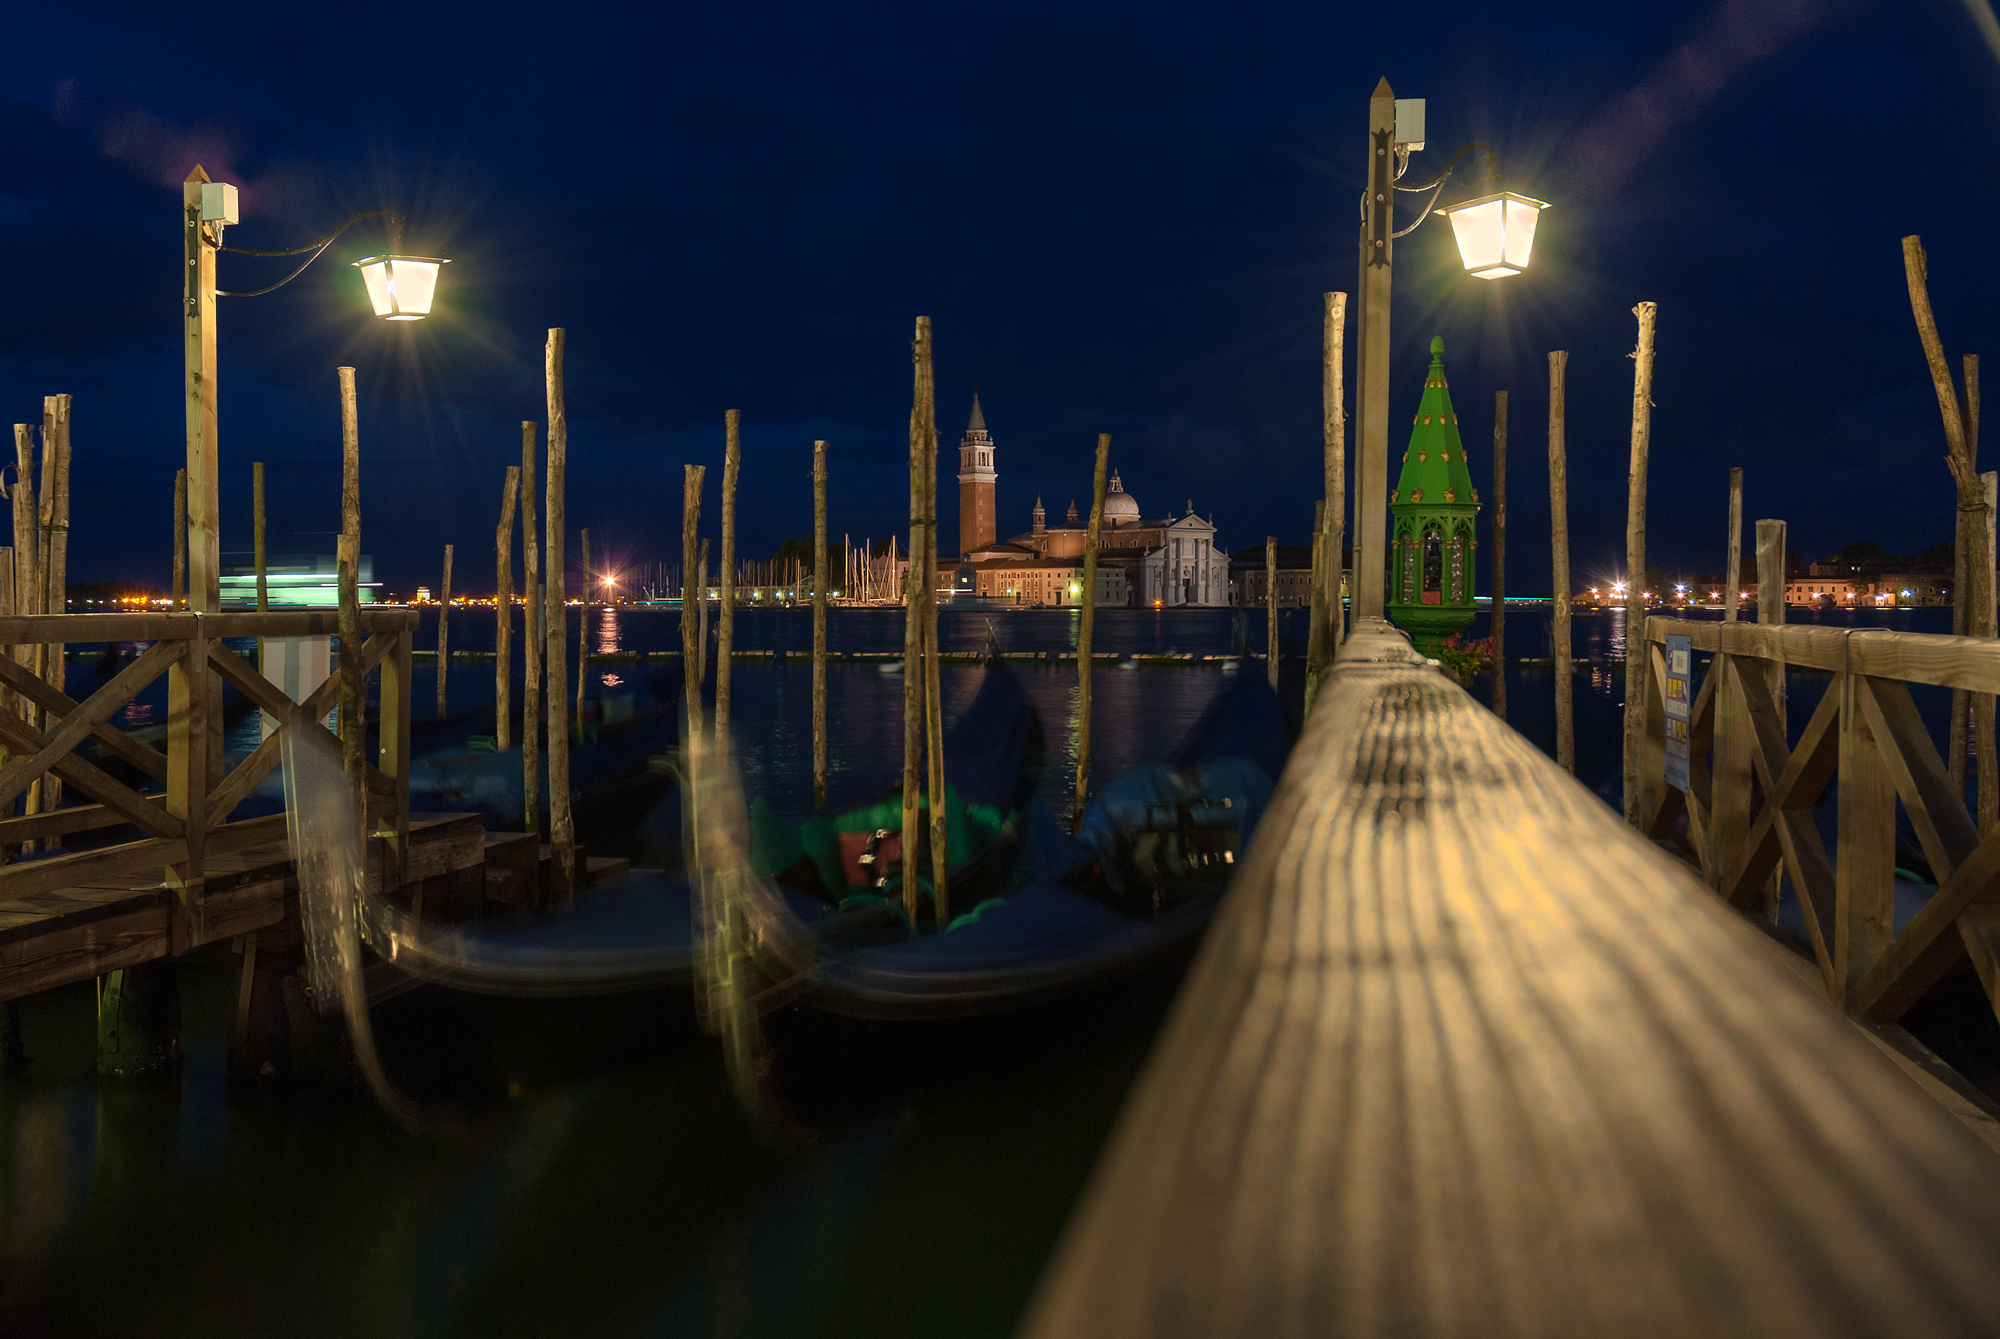 Night in Venice...